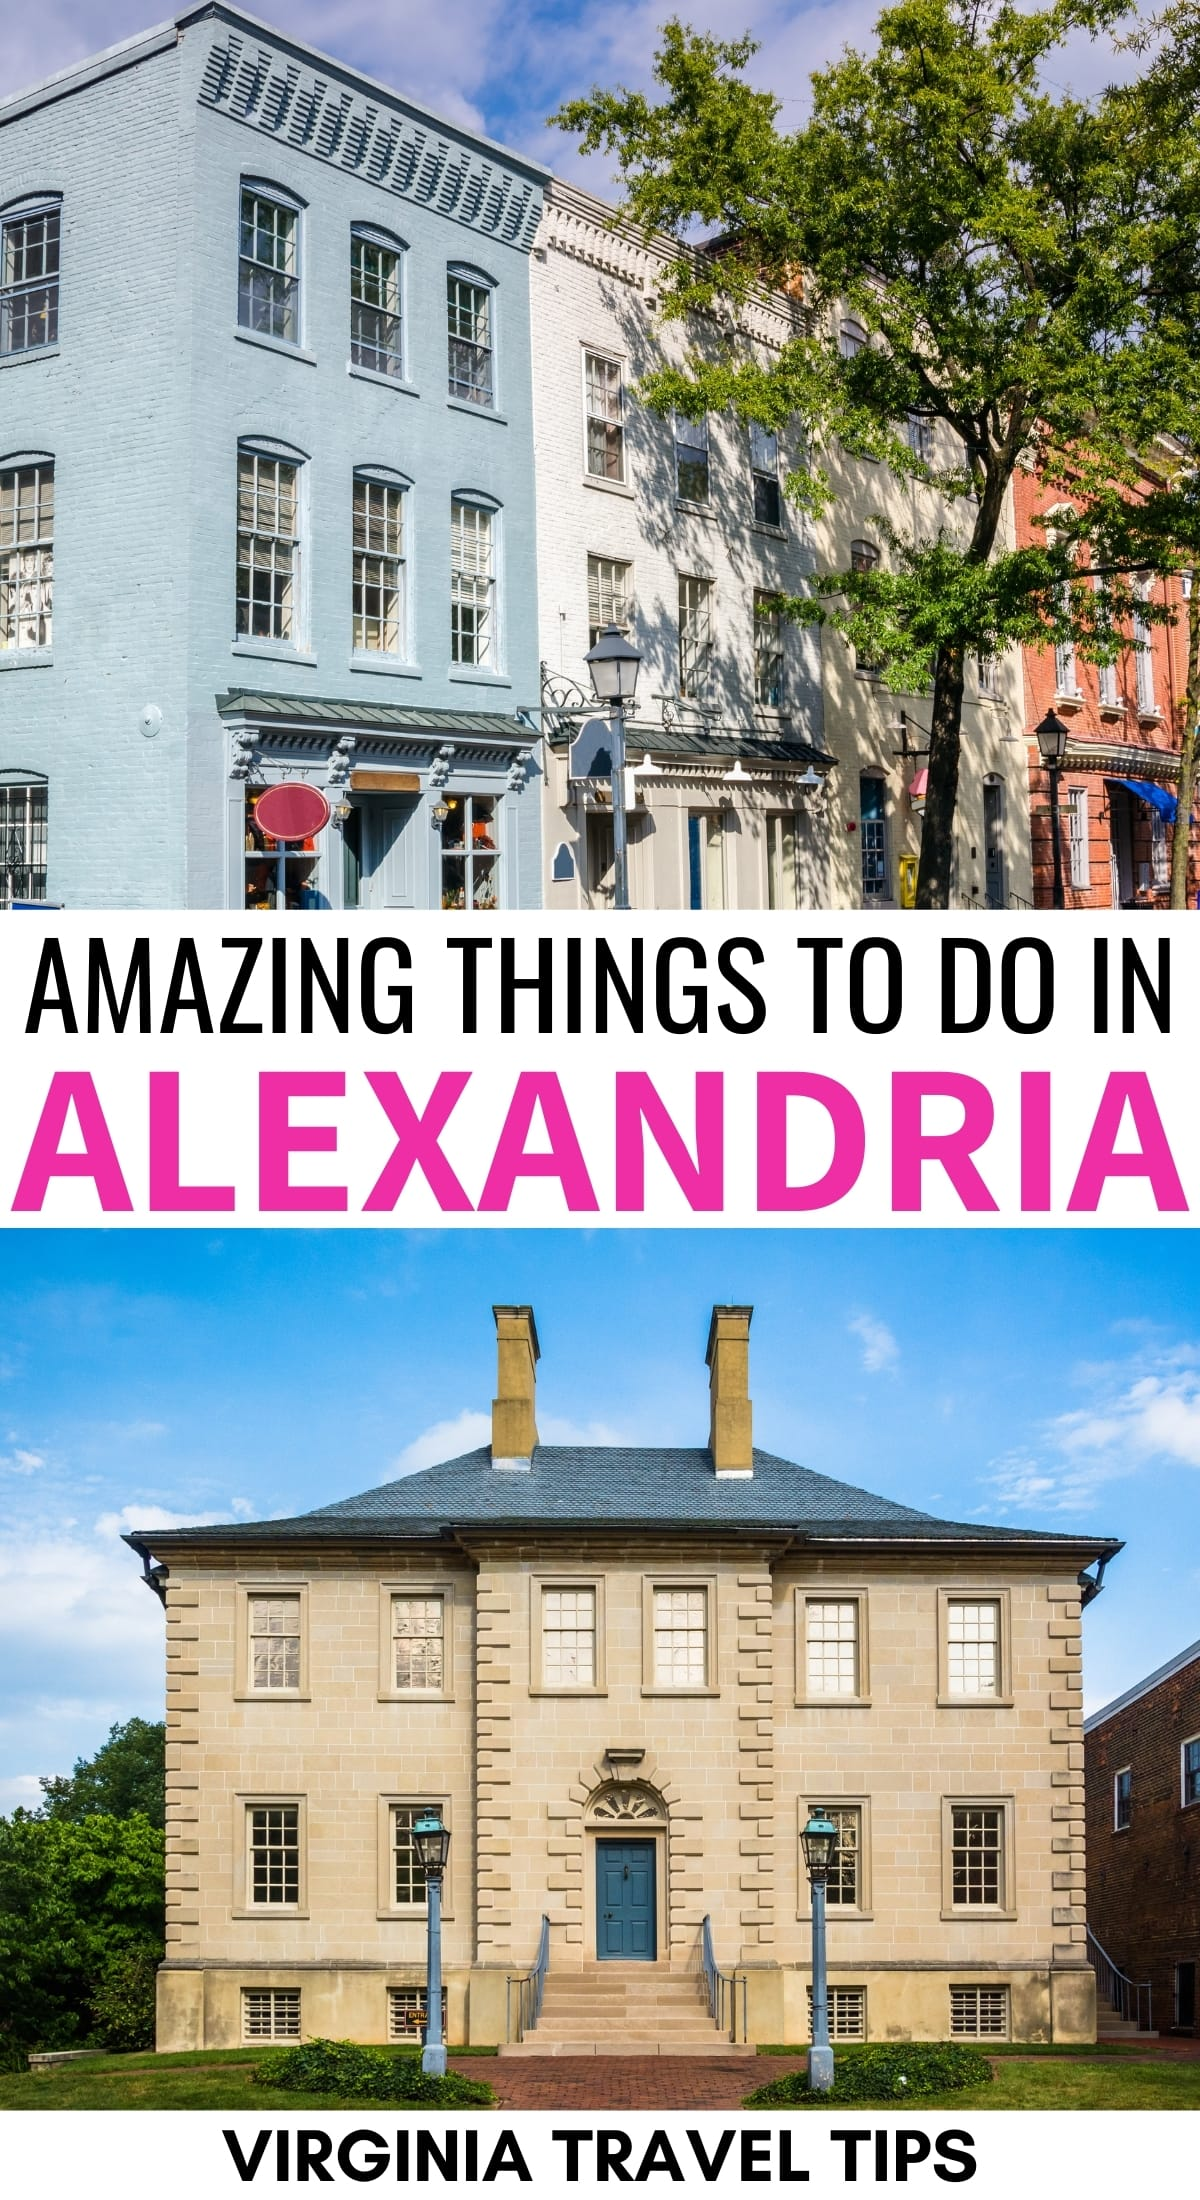 15 Best Things to Do in Alexandria for First-Time Visitors: Are you looking for awesome things to do in Alexandria, VA? This guide will give you the best of what to do in Alexandria from historical sights to restaurants and more! | Visit Alexandria | Visit Virginia | Travel to Alexandria | Travel to Washington DC | Northern Virginia | Alexandria history | Mt Vernon | Alexandria sightseeing | Alexandria attractions